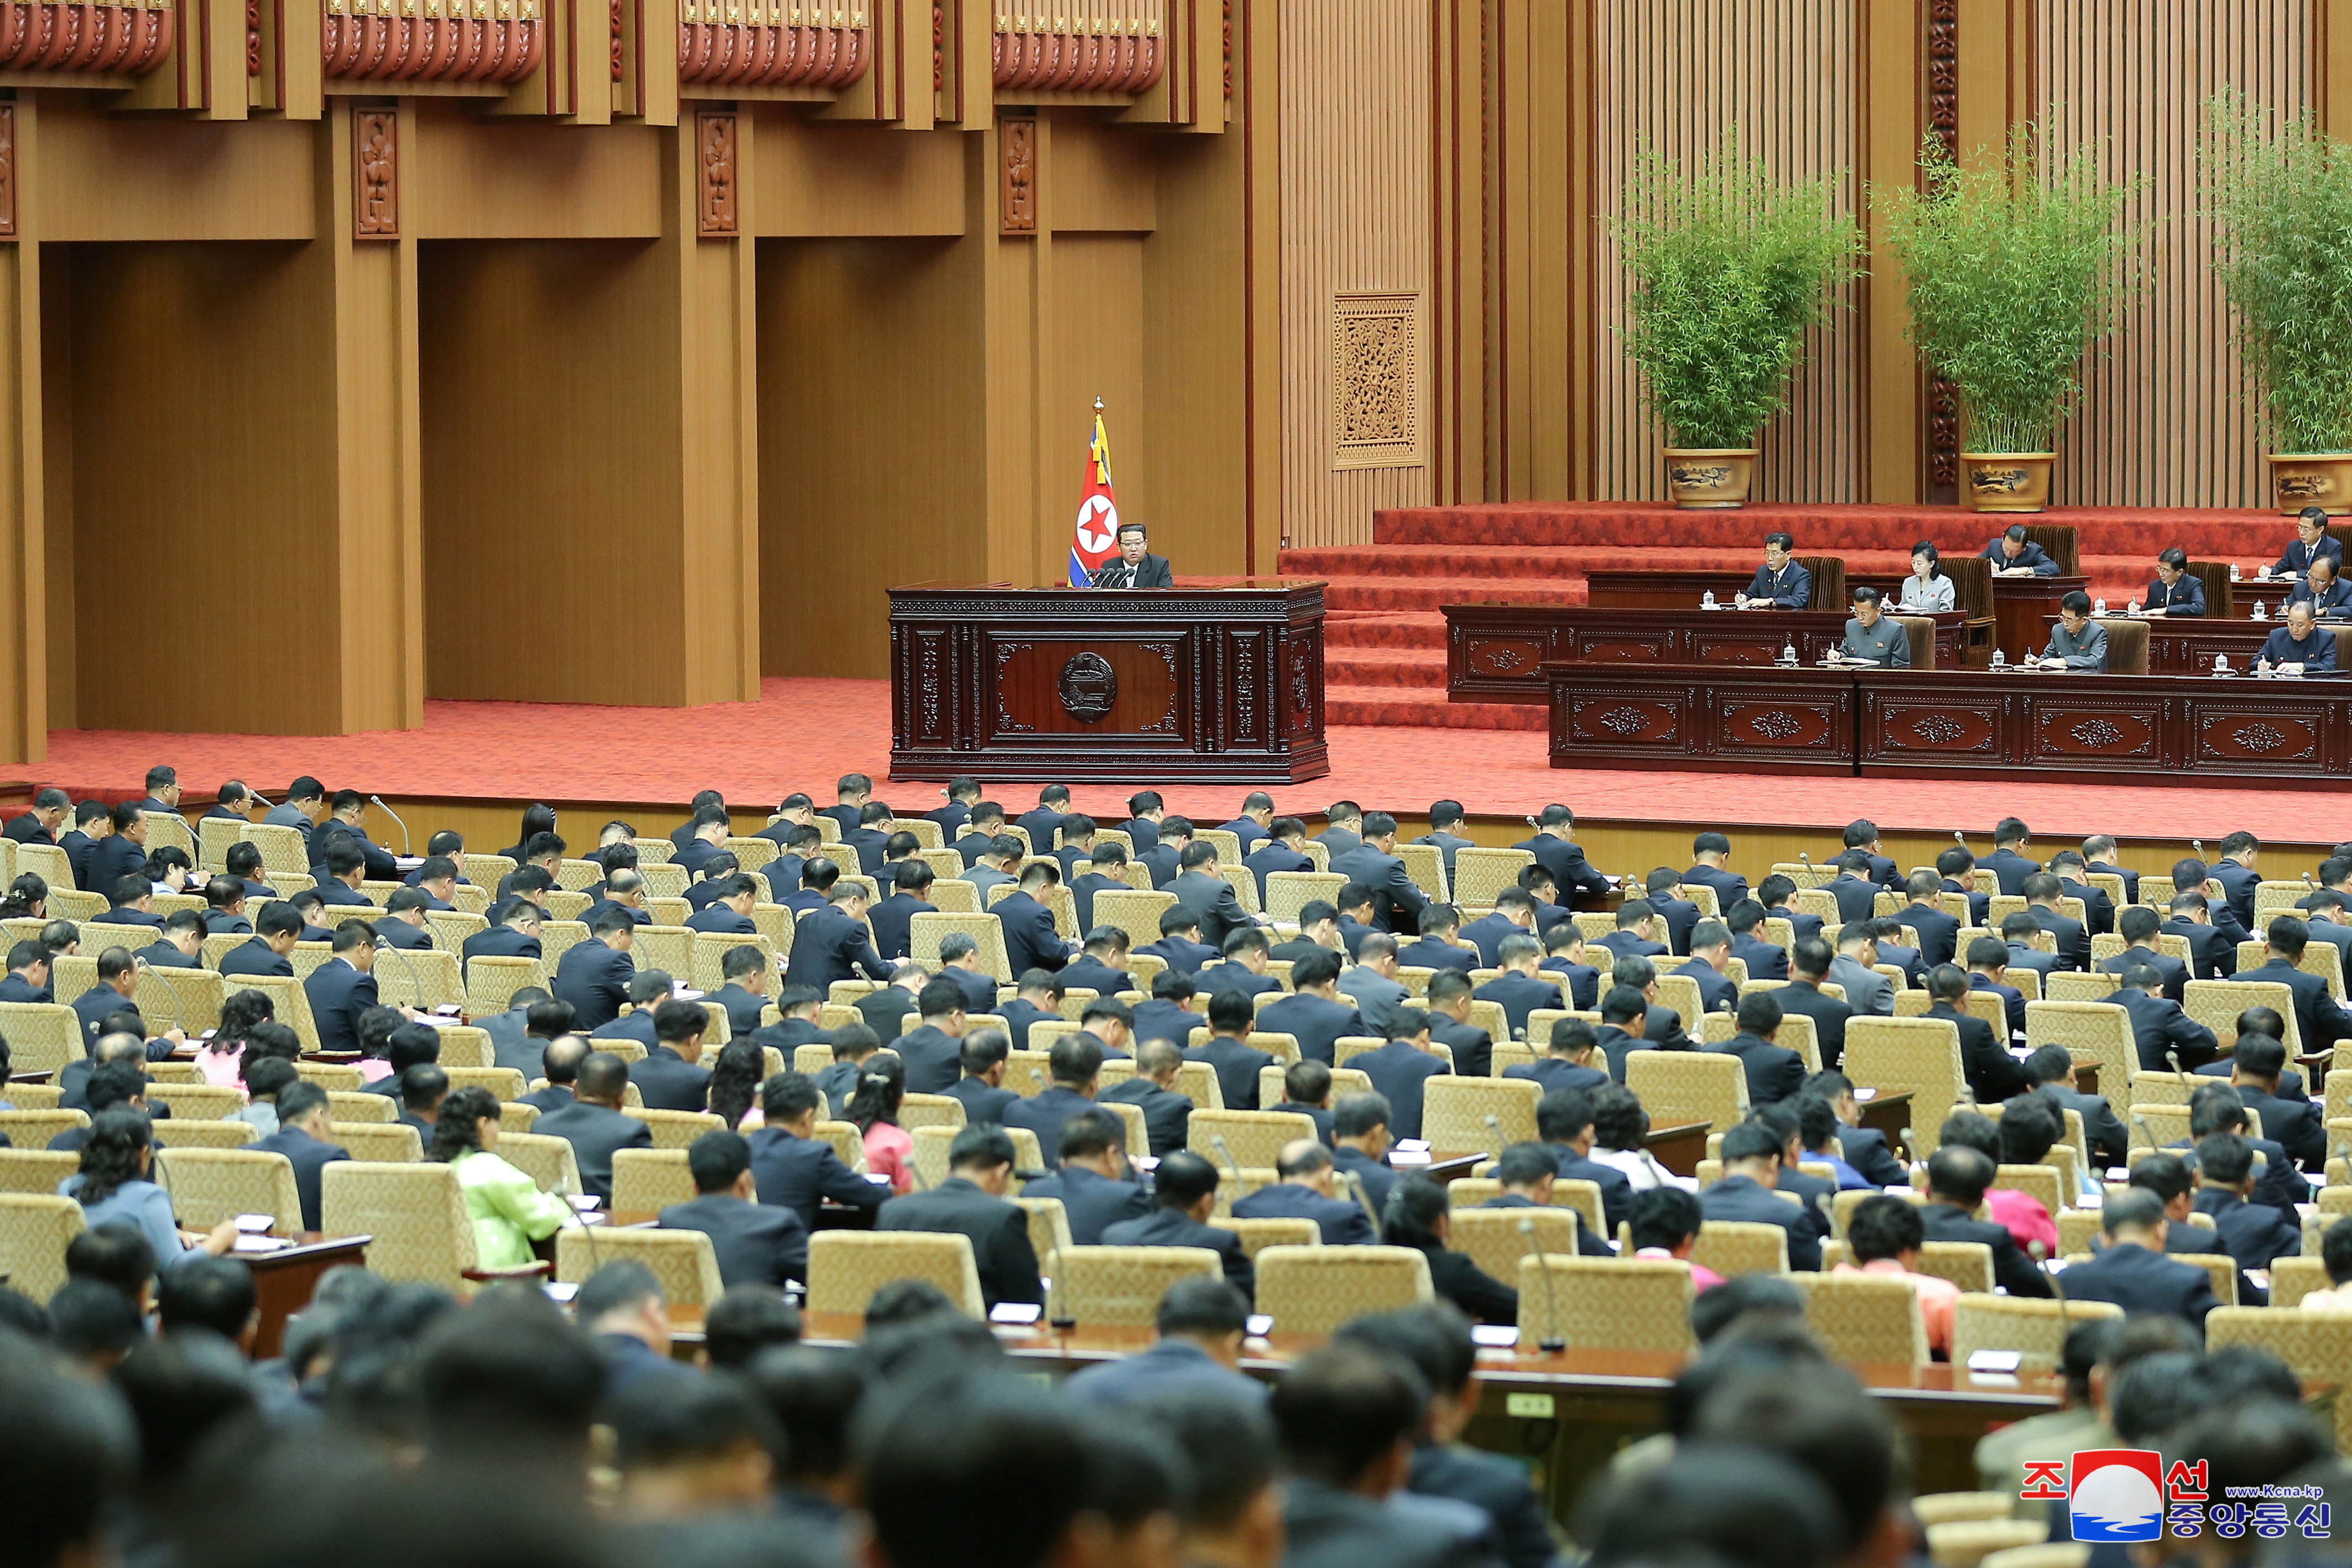 North Korean leader Kim Jong Un delivers a policy speech at the second-day sitting of the 5th Session of the 14th Supreme People's Assembly (SPA) of the Democratic People's Republic of Korea (DPRK) at the Mansudae Assembly Hall in Pyongyang, North Korea, in this undated photo released on September 30, 2021 by North Korea's Korean Central News Agency (KCNA). KCNA via REUTERS        ATTENTION EDITORS - THIS IMAGE WAS PROVIDED BY A THIRD PARTY. REUTERS IS UNABLE TO INDEPENDENTLY VERIFY THIS IMAGE. NO THIRD PARTY SALES. SOUTH KOREA OUT. NO COMMERCIAL OR EDITORIAL SALES IN SOUTH KOREA.